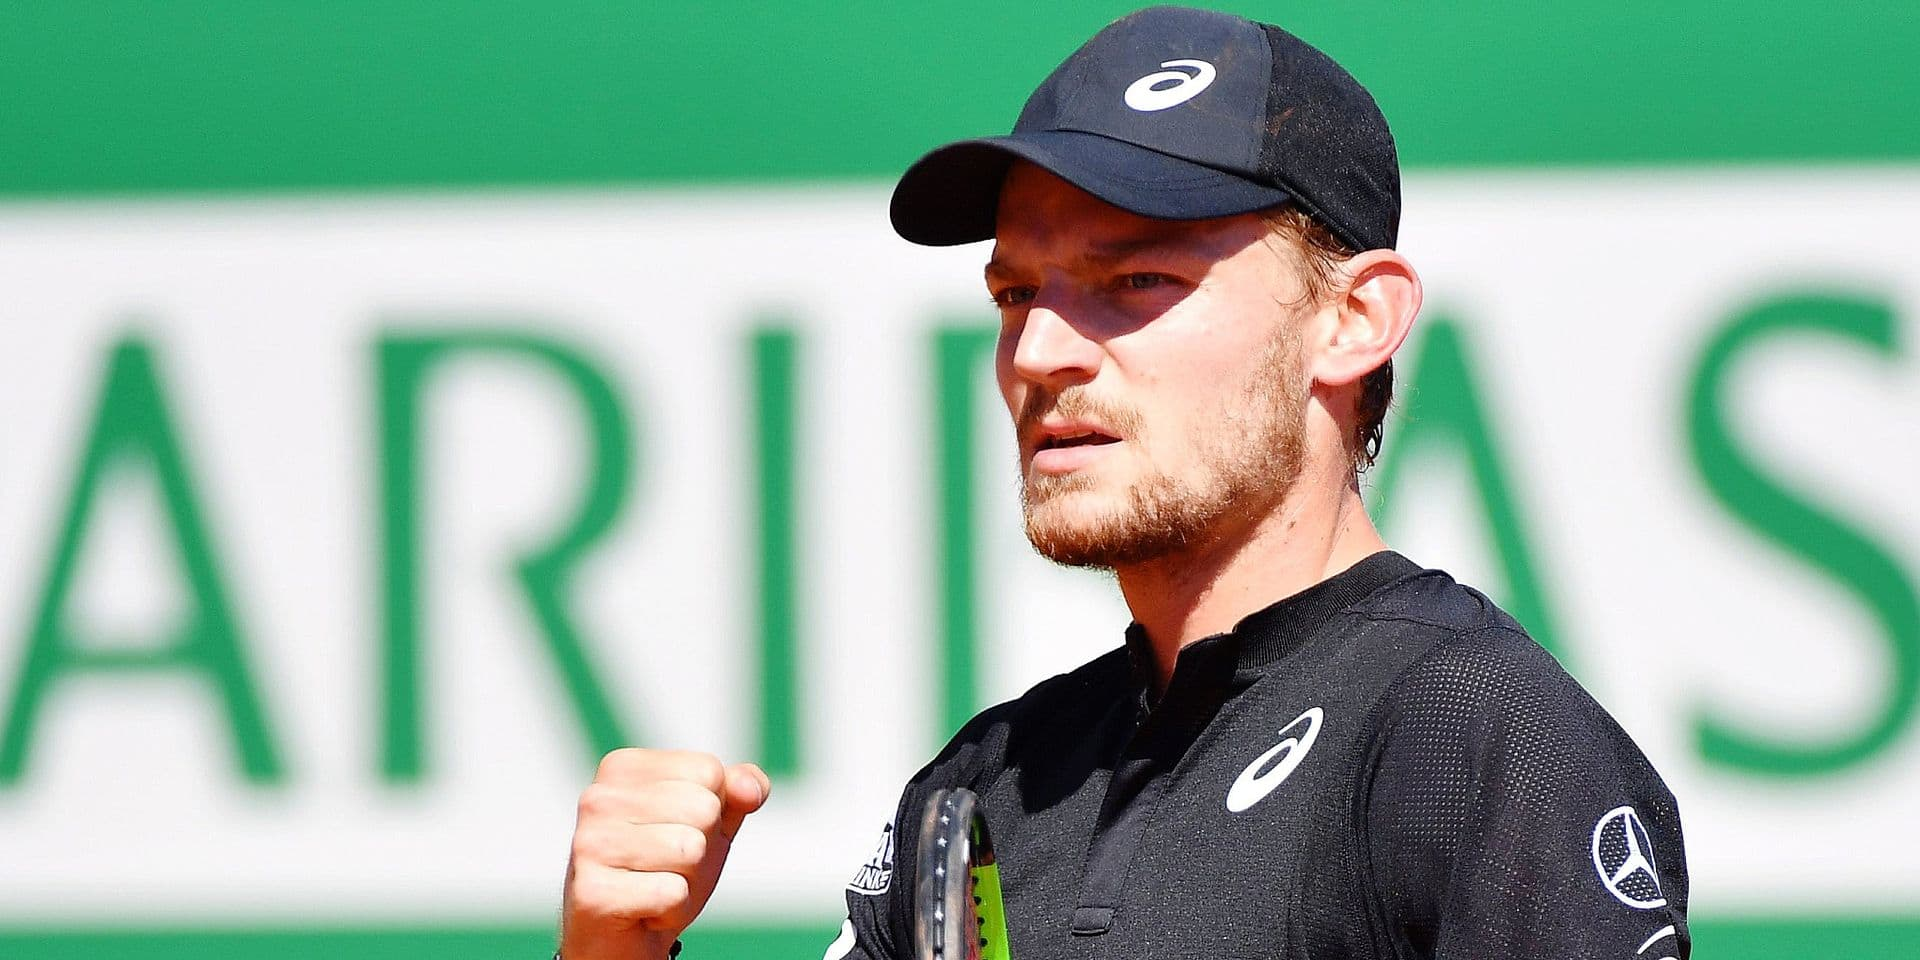 Belgium's David Goffin celebrates after winning his tennis match against Argentina's Guido Andreozzi on the day 3 of the Monte-Carlo ATP Masters Series tournament on April 15, 2019 in Monaco. (Photo by YANN COATSALIOU / AFP)